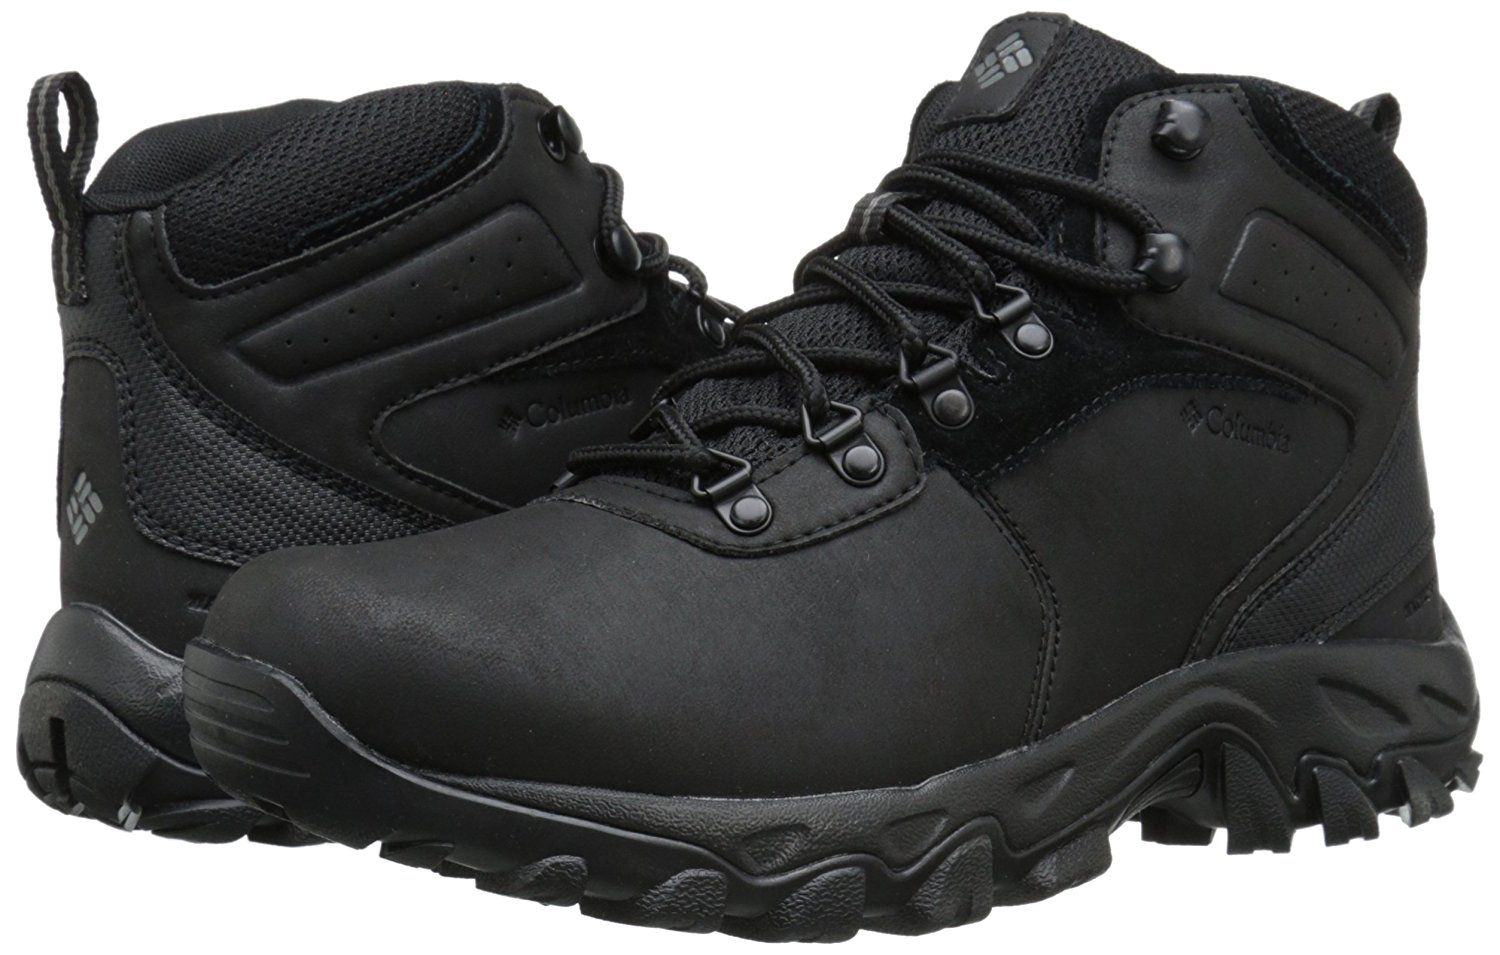 Columbia Men S Newton Ridge Plus Ii Waterproof Hiking Boot See This Great Product This Is An Hiking Boots Waterproof Hiking Boots Waterproof Hiking Shoes